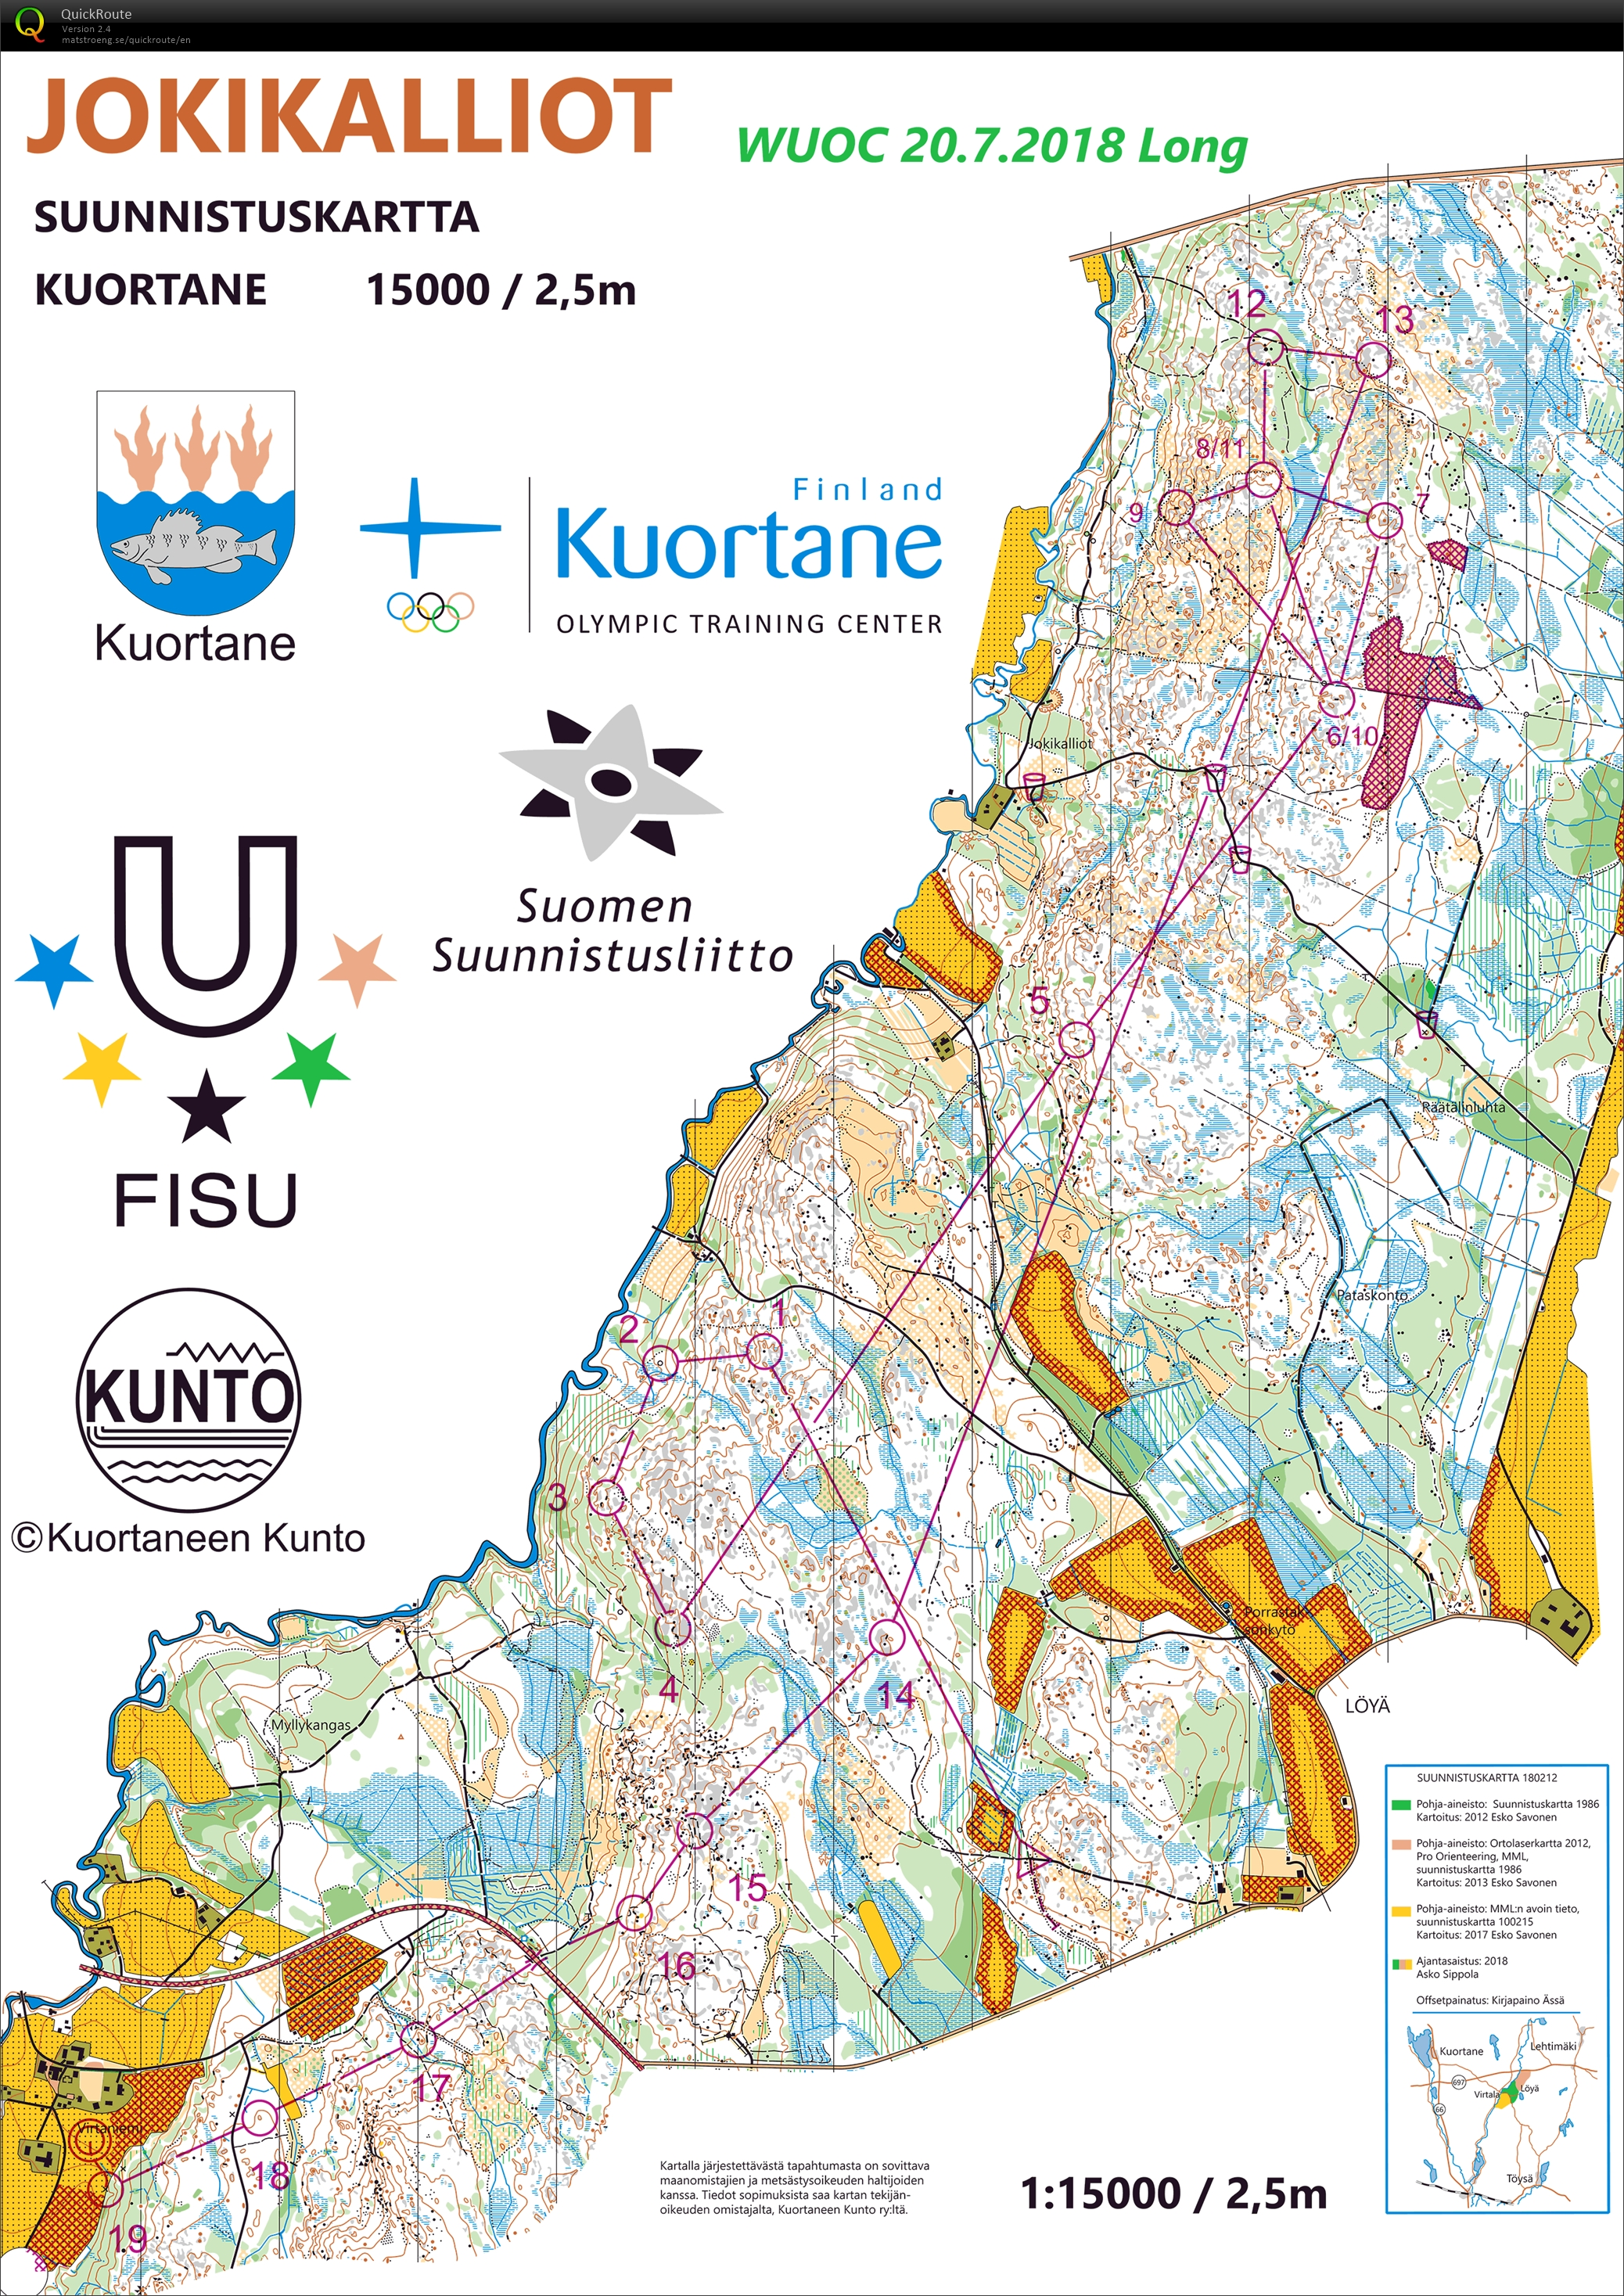 Wuoc 2018 Long July 20th 2018 Orienteering Map From Aleksi